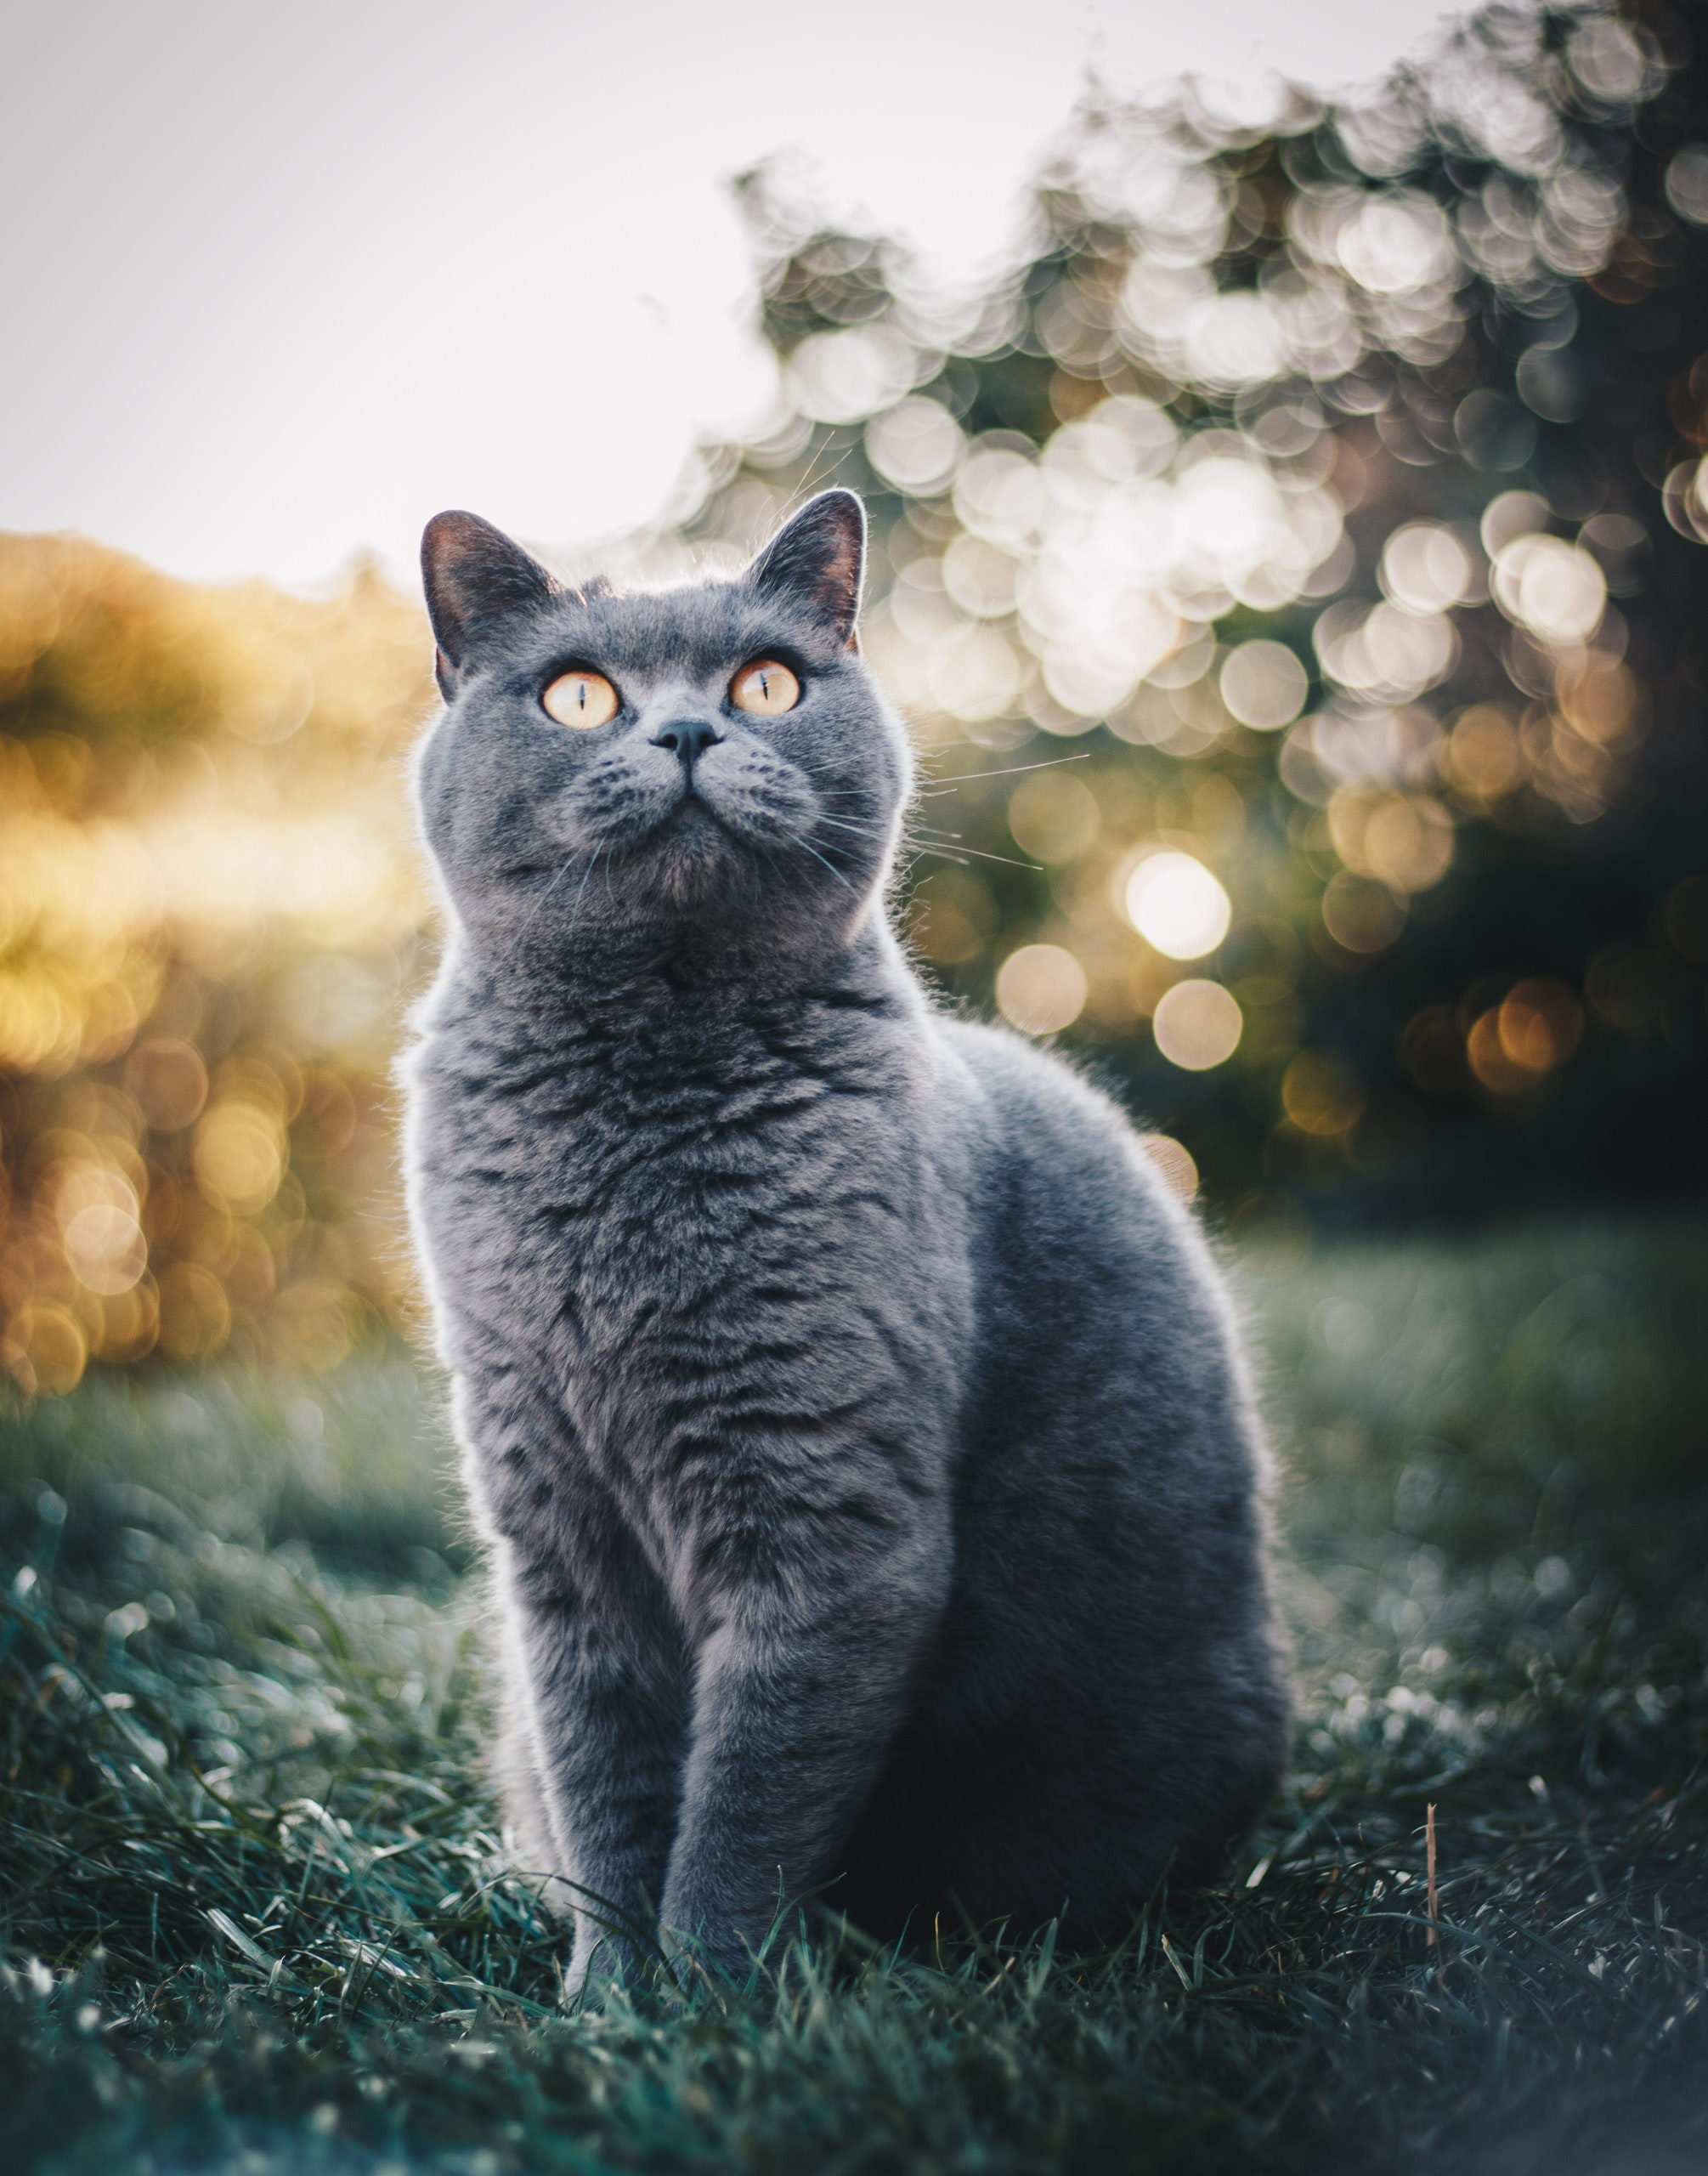 A British Shorthair cat sitting on a grass field